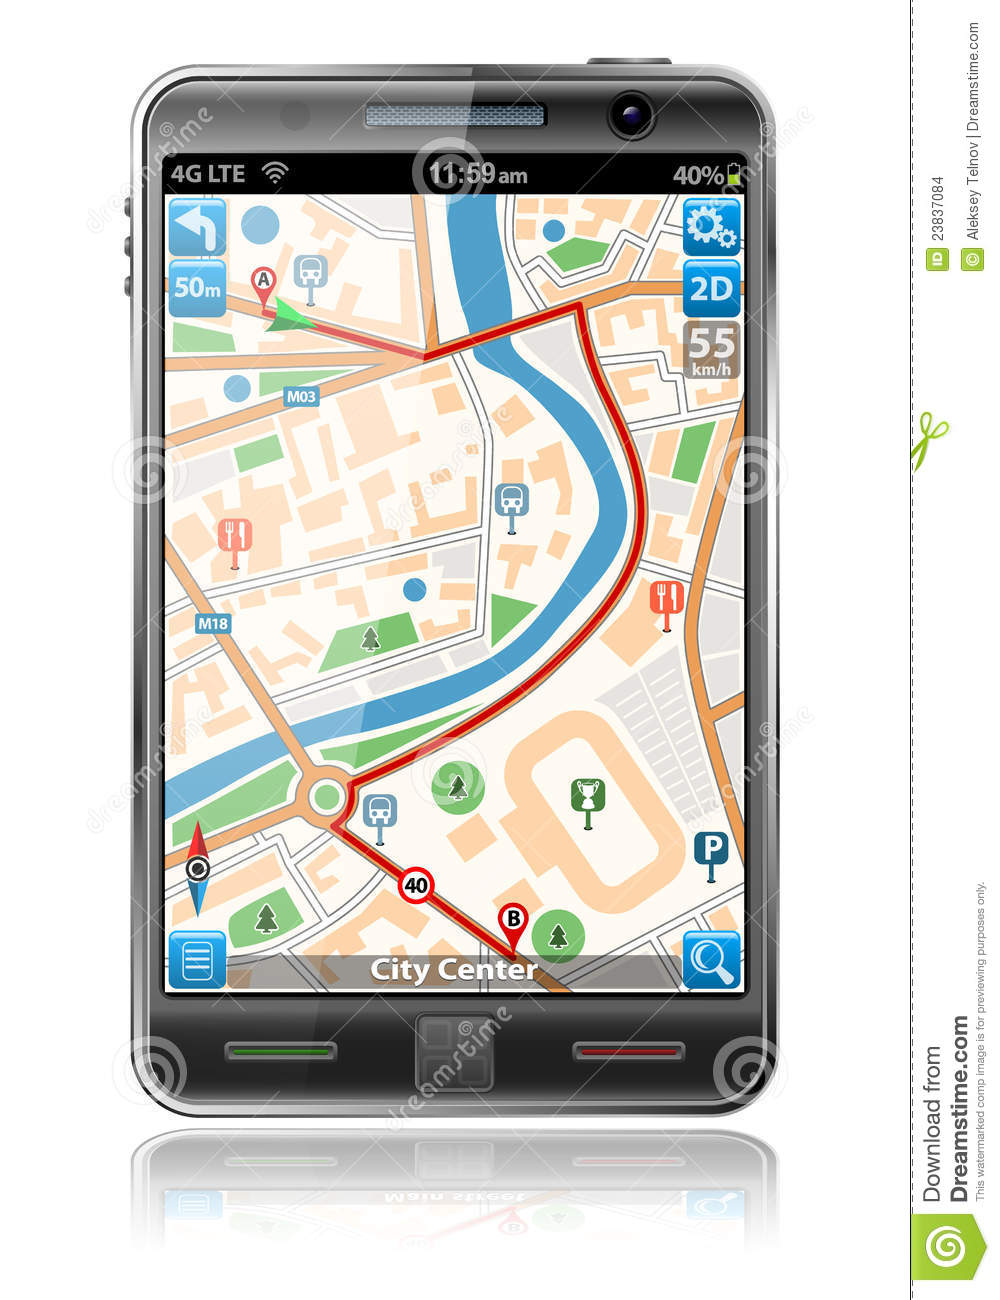 Smart Phone With GPS Navigation Application Stock Vector ...